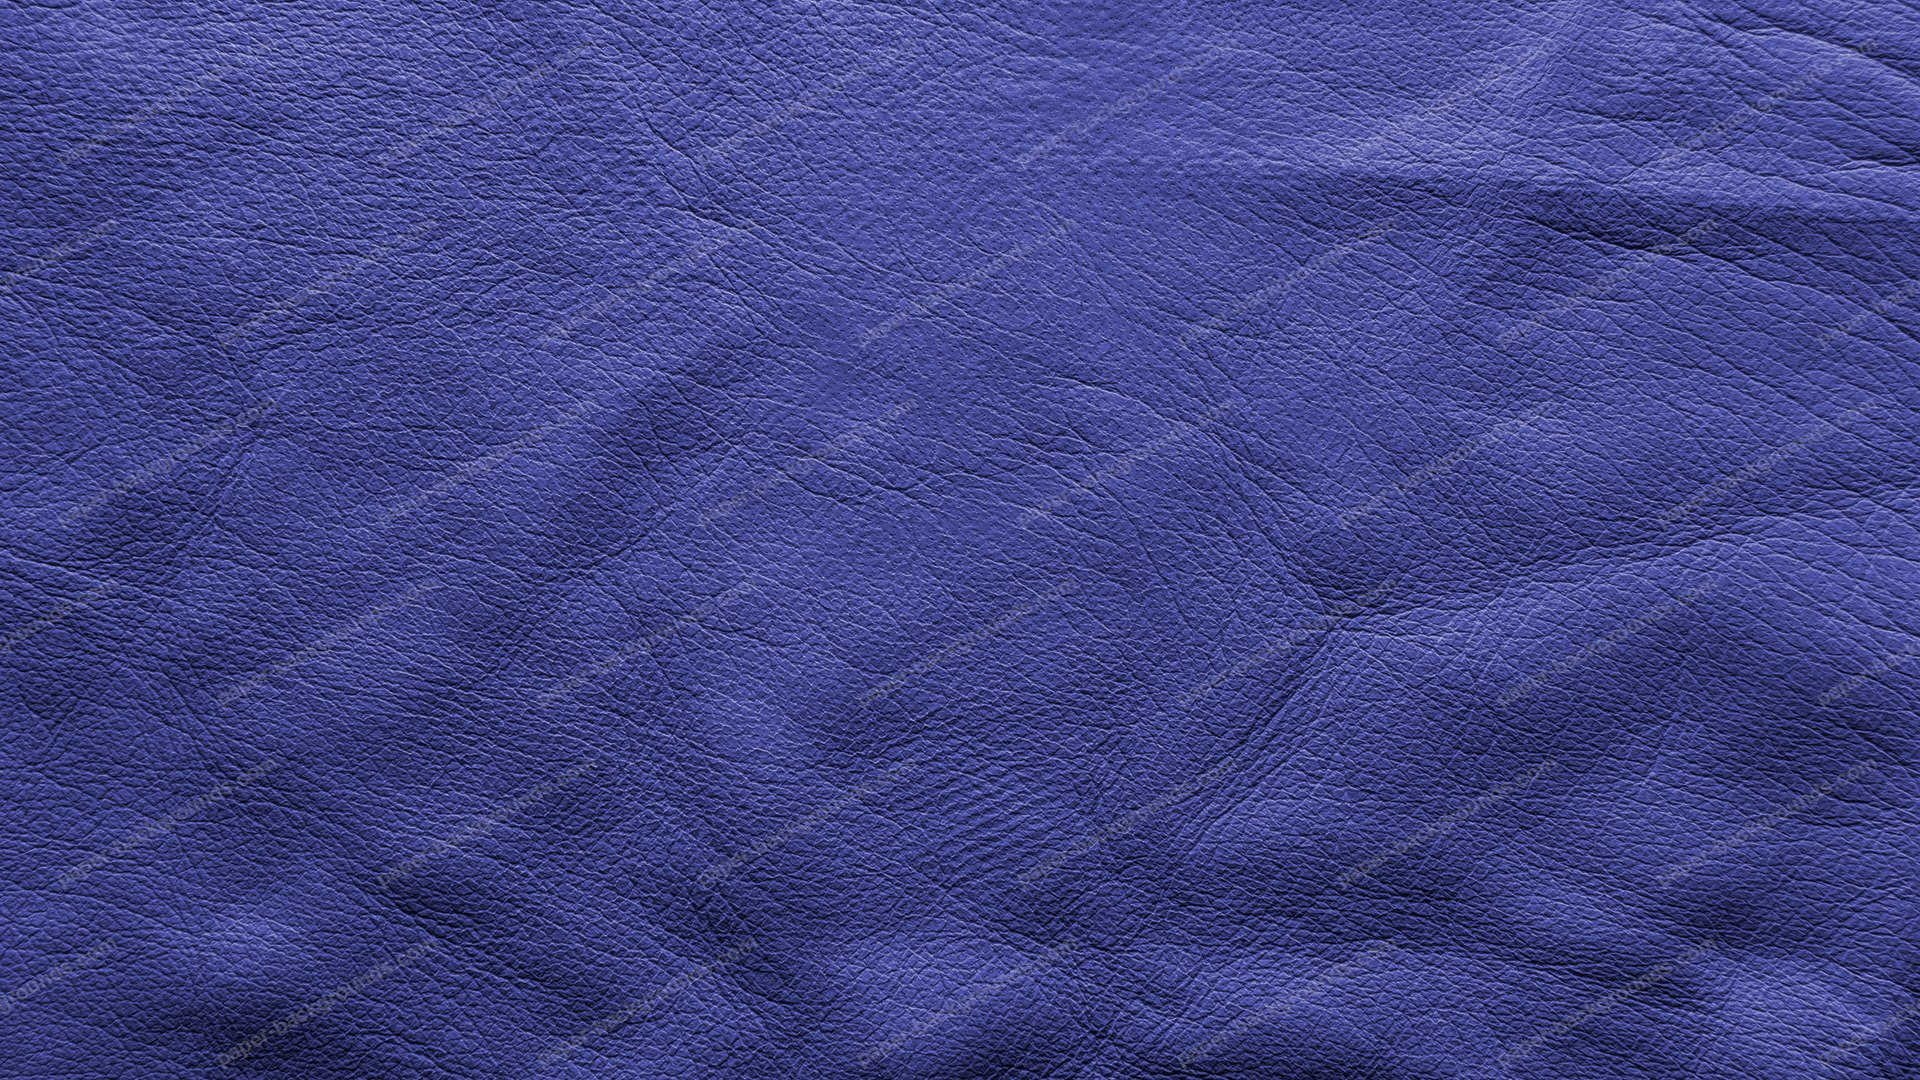 indigo abstract wallpaper hd - photo #6